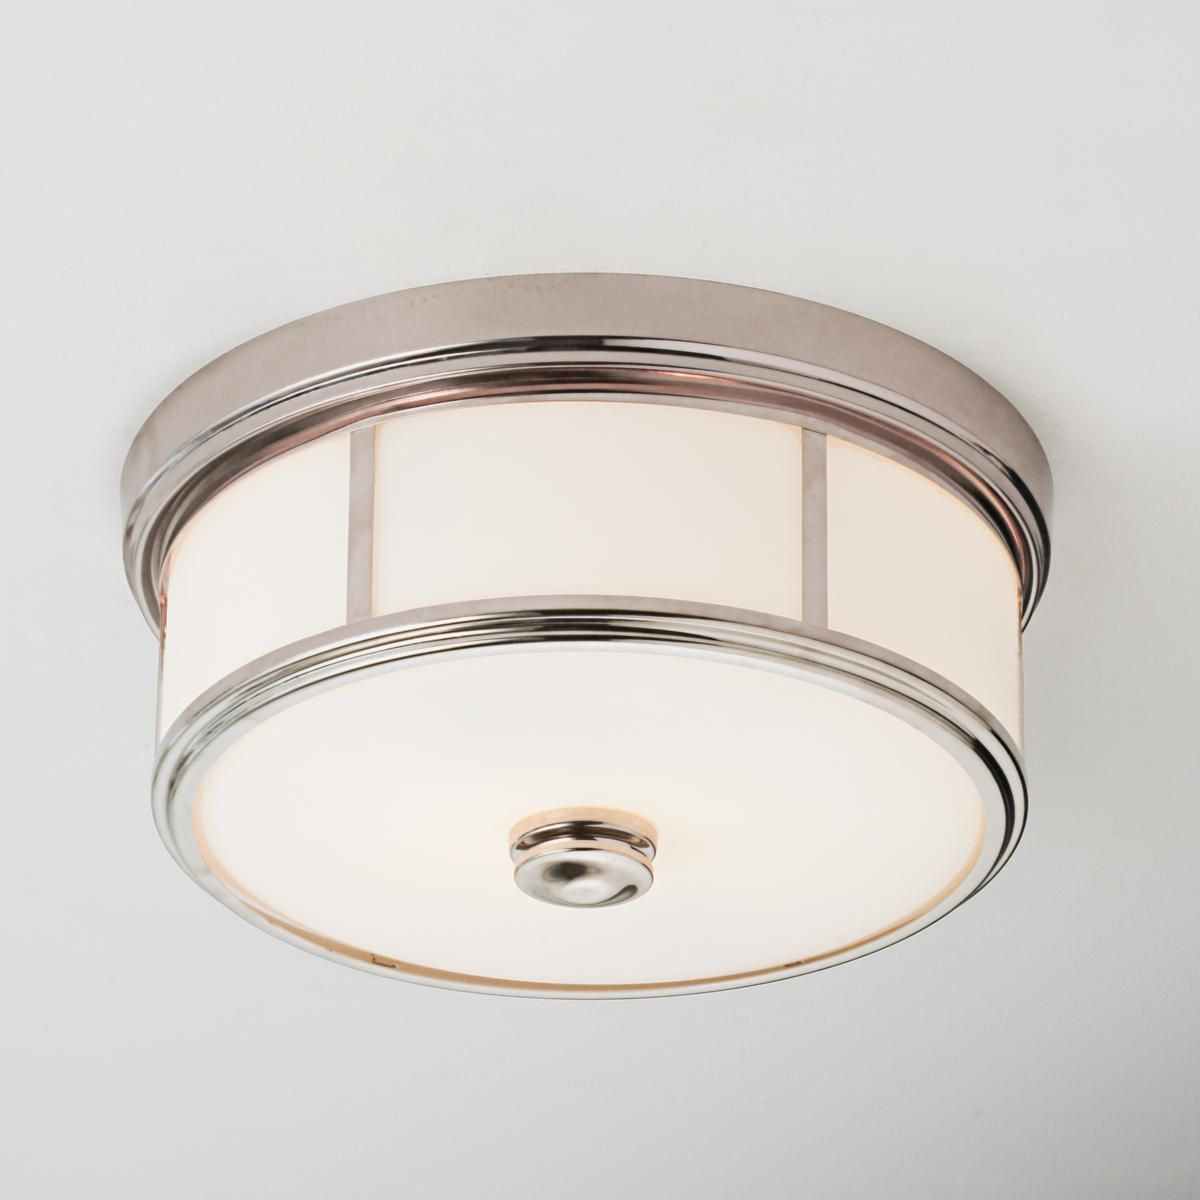 Traditional urban cage ceiling light ceiling lights for 149 or